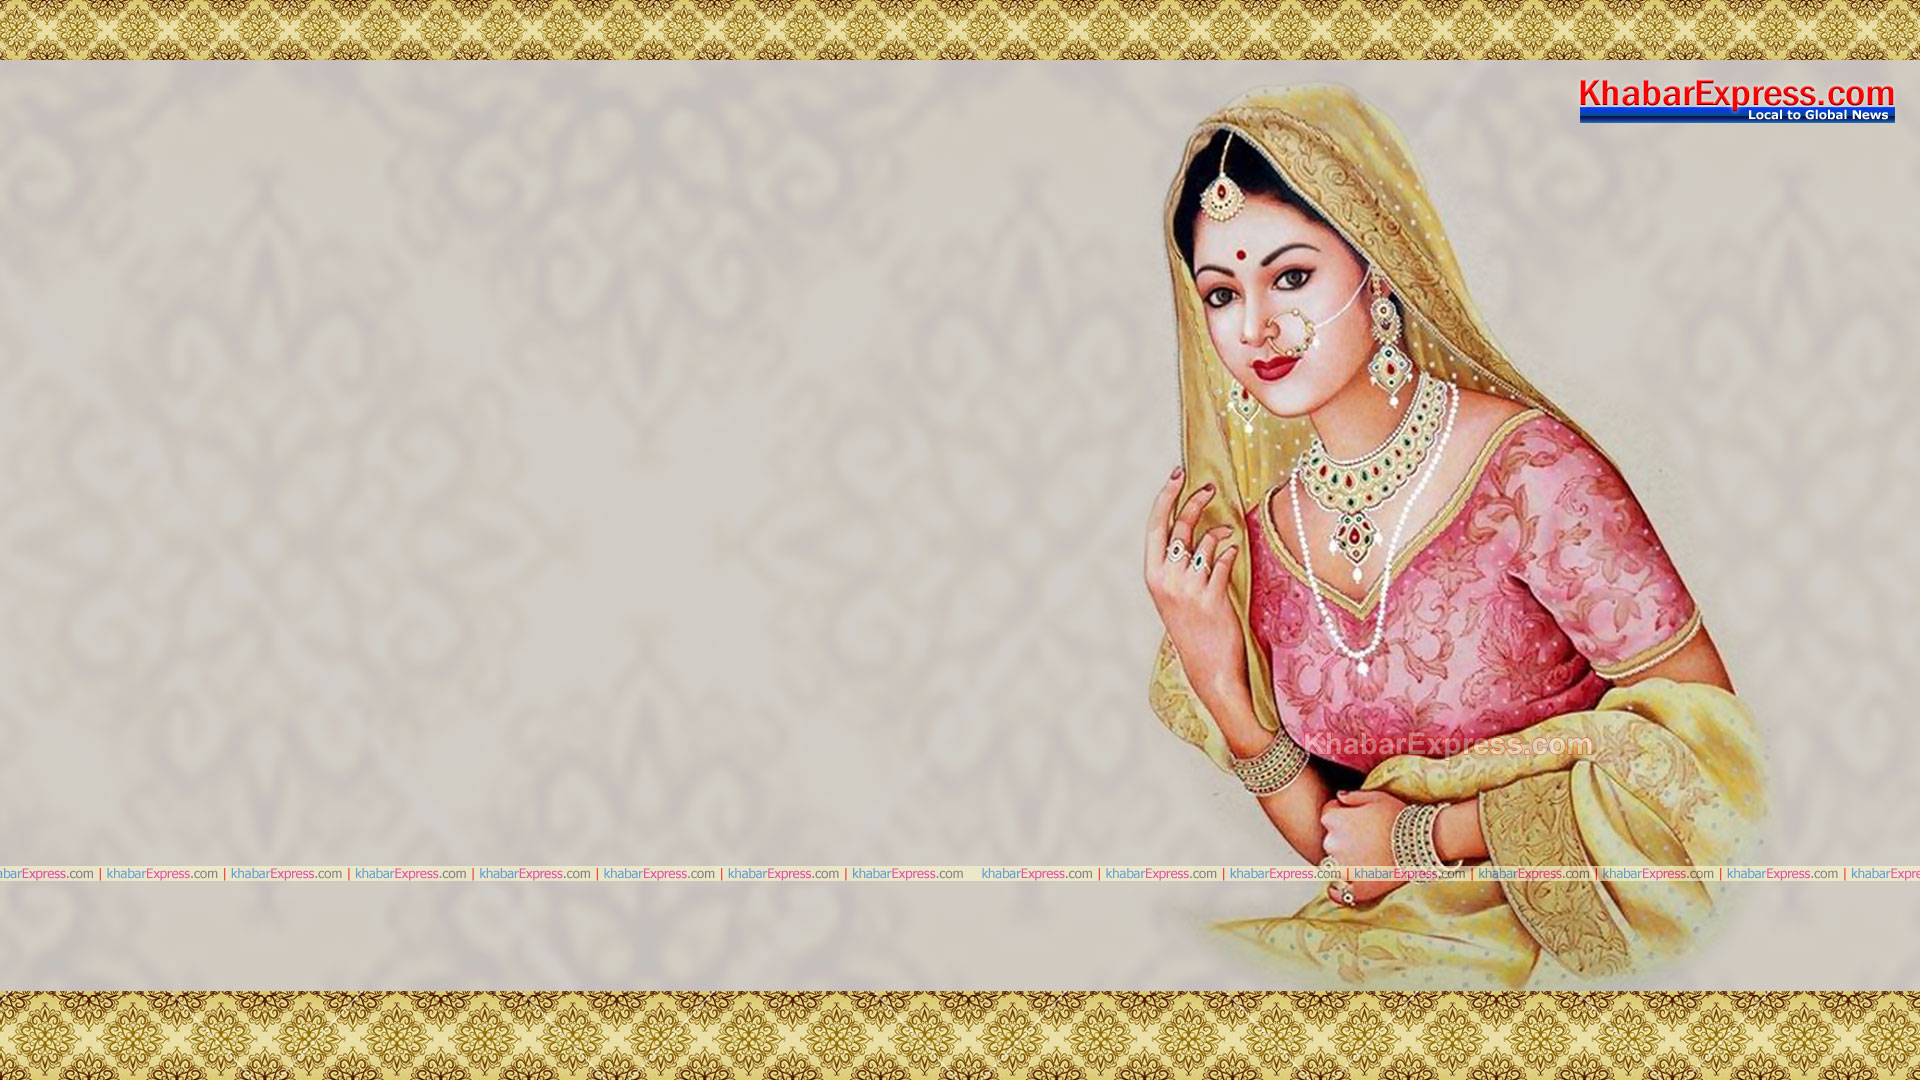 Rajasthani Painting with golden Strip